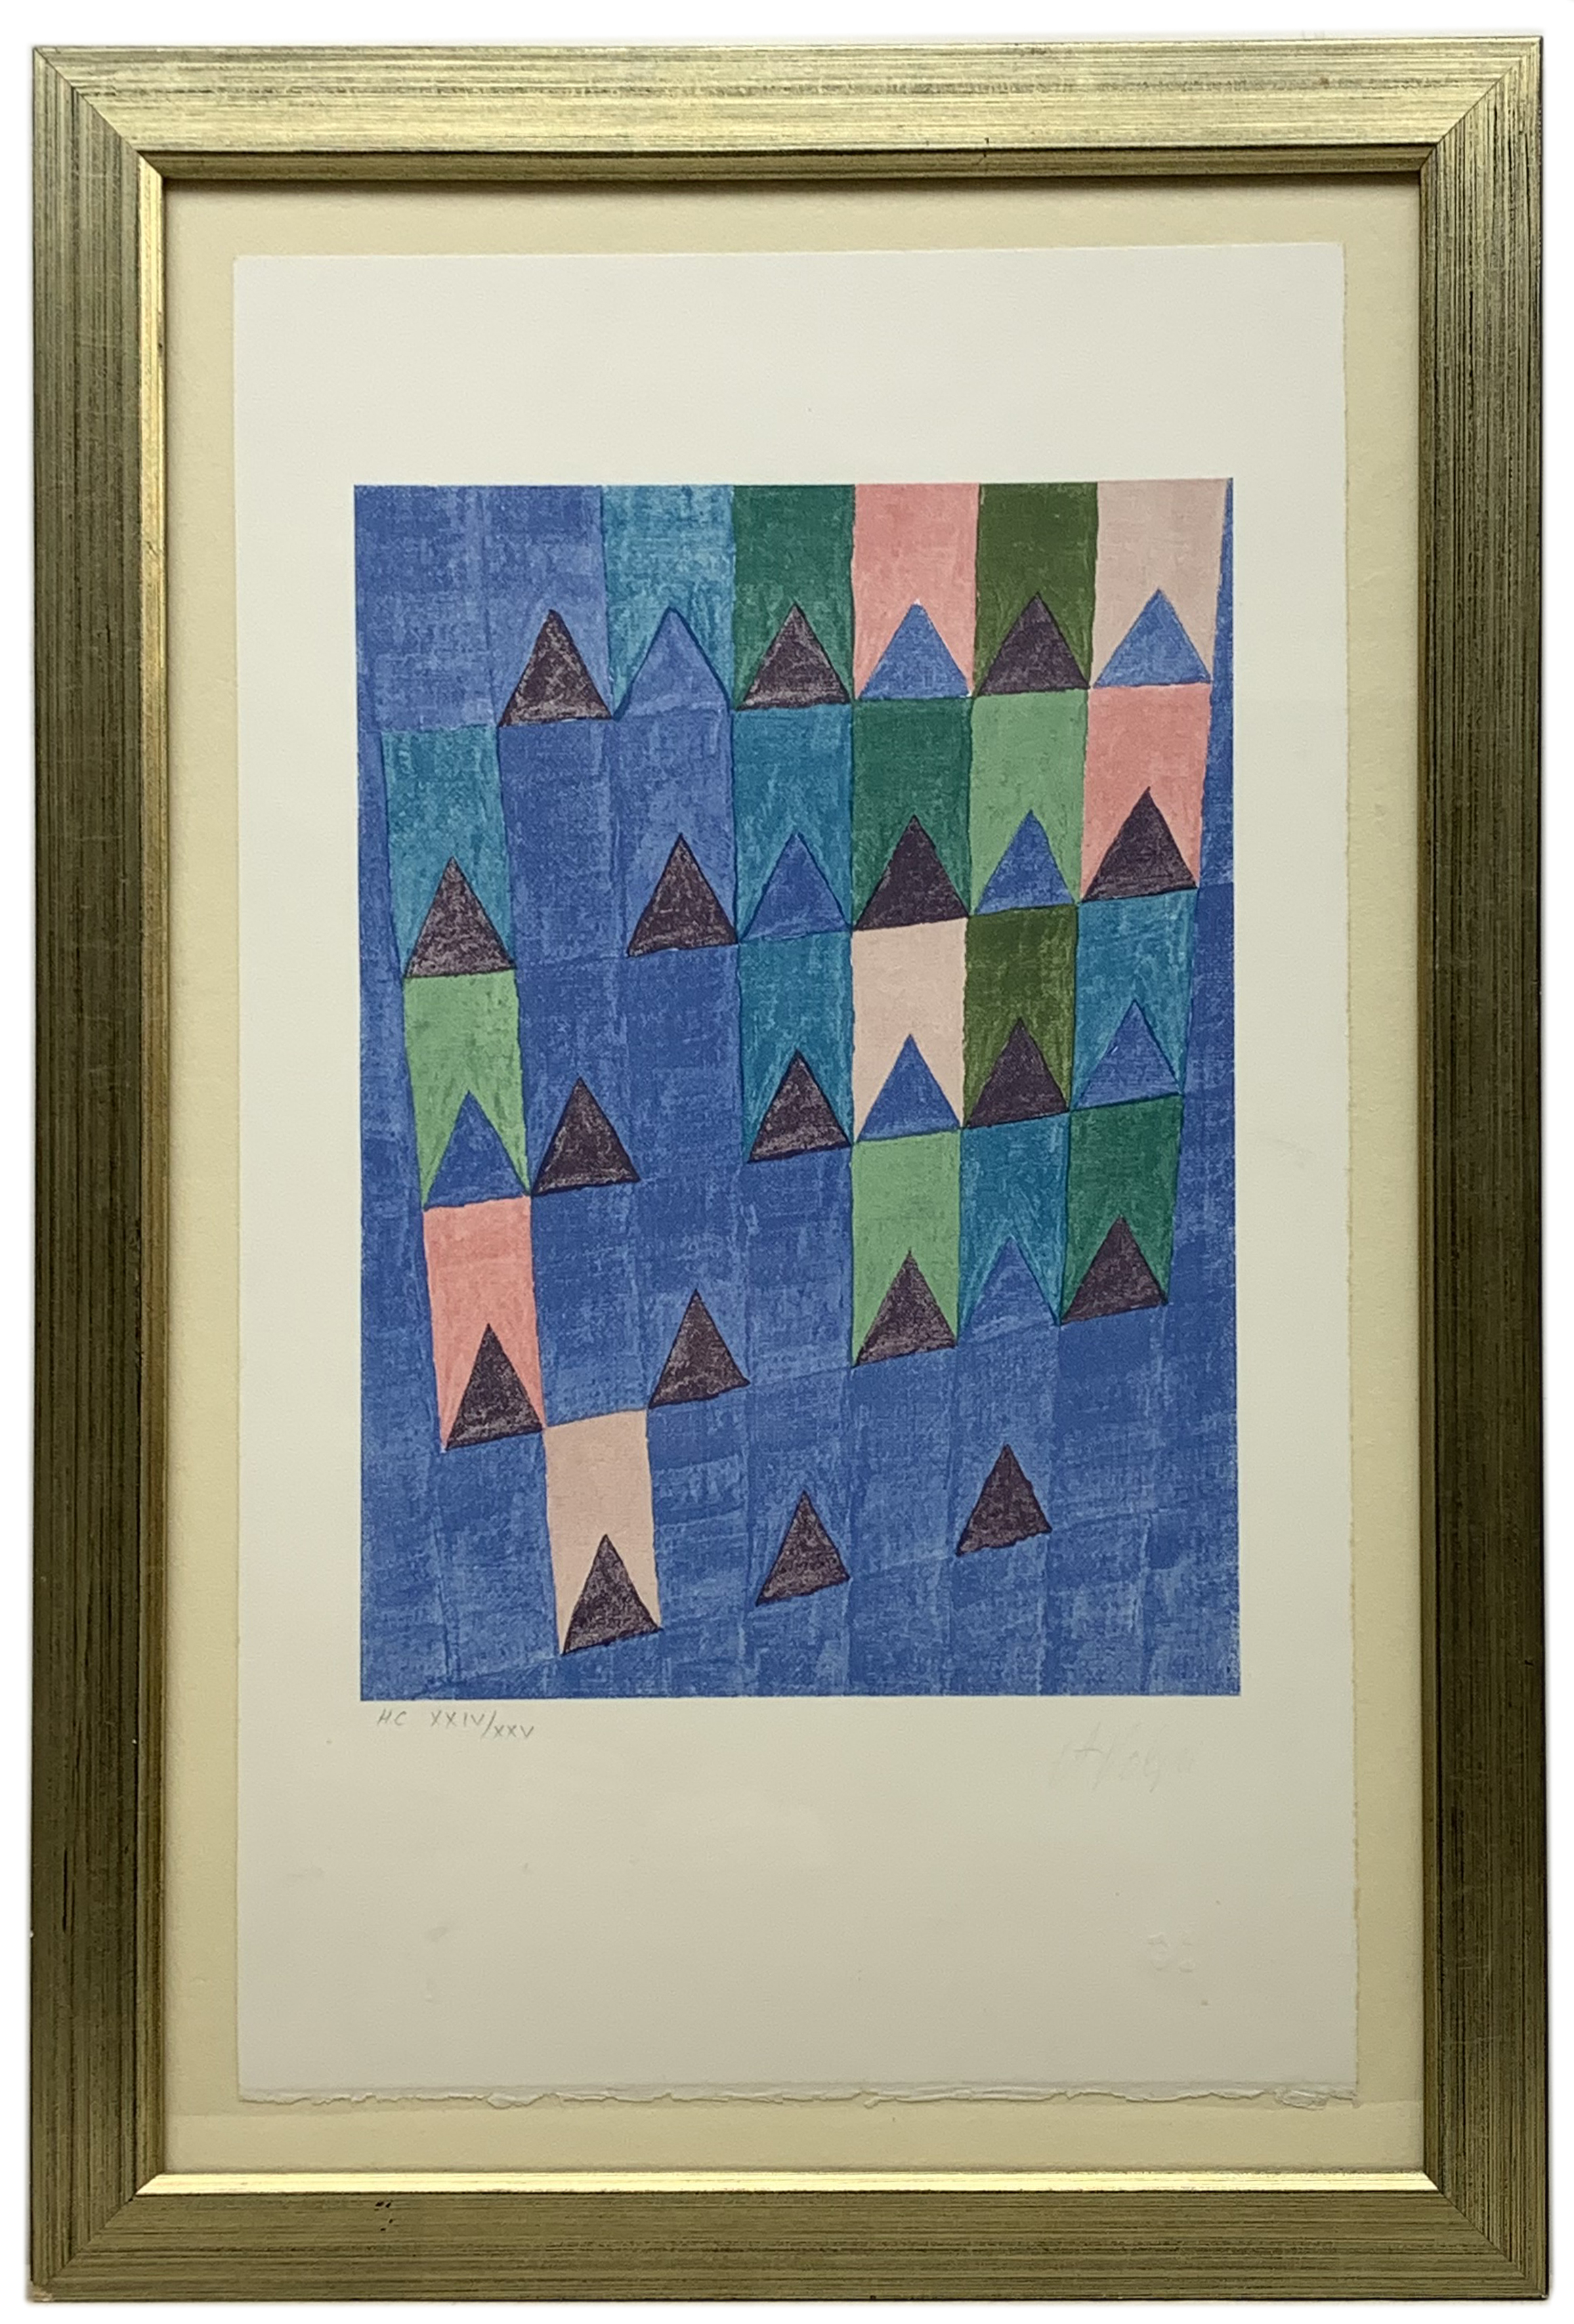 Alfredo Volpi (Brazilian 1896-1988): Bandeirinhas, limited edition screenprint signed and numbered - Image 2 of 2